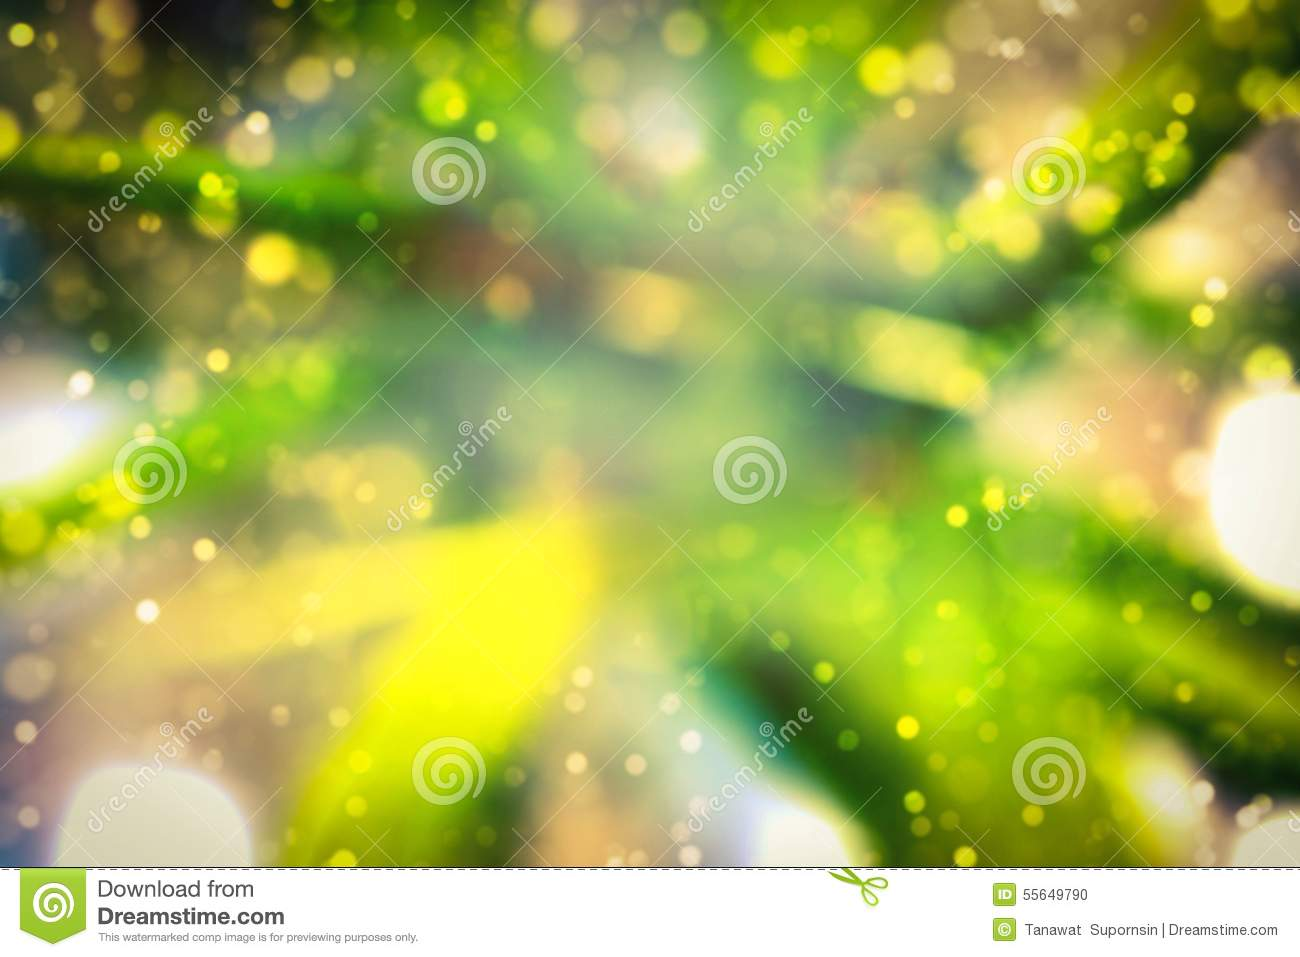 Gold Color Wallpaper Stock Images - Download 33,345 Photos